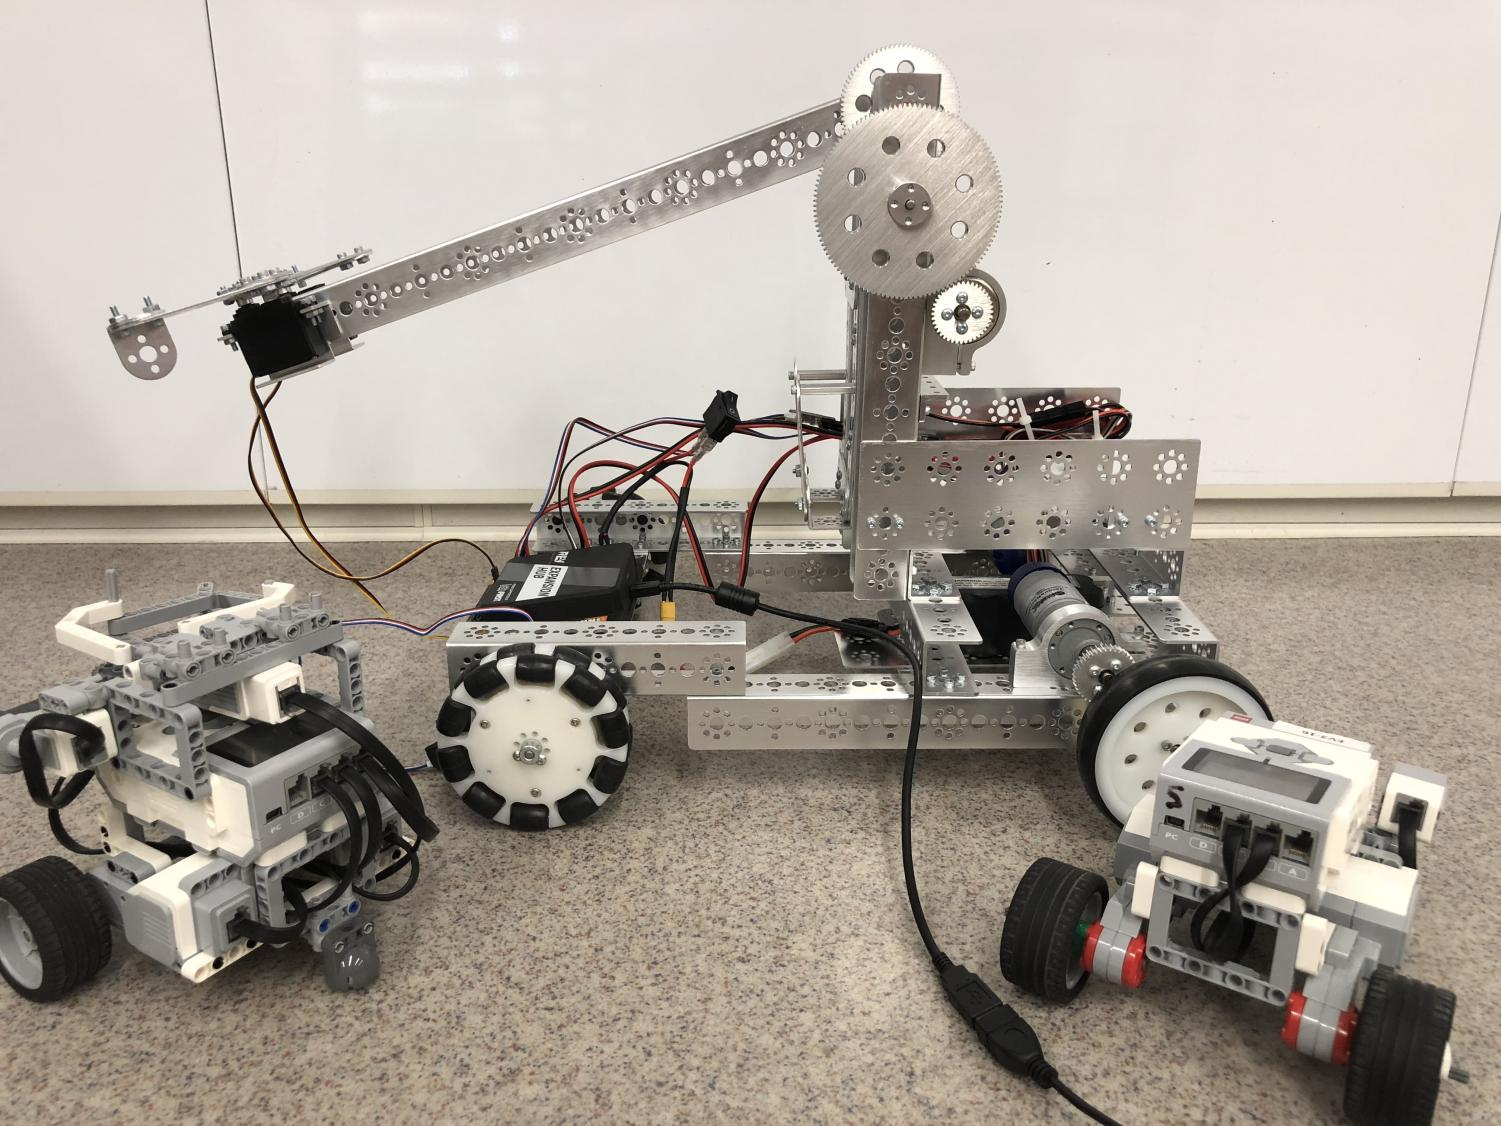 Students will have the ability to build robots such as the ones pictured in the new elective course.